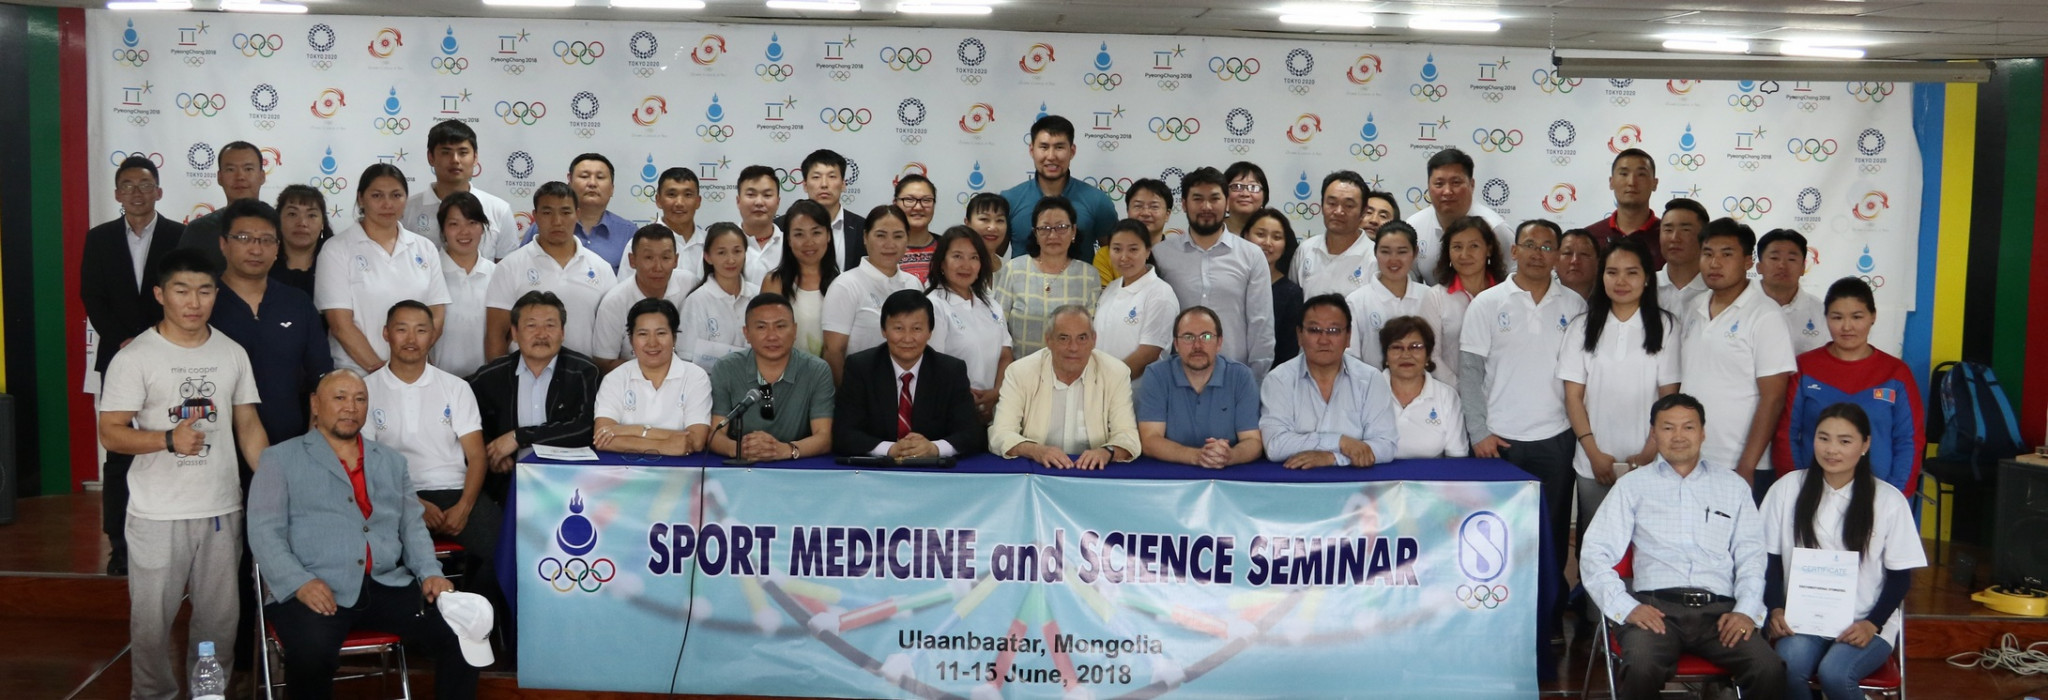 Mongolia hosts sports science seminar with help from Olympic Solidarity Commission